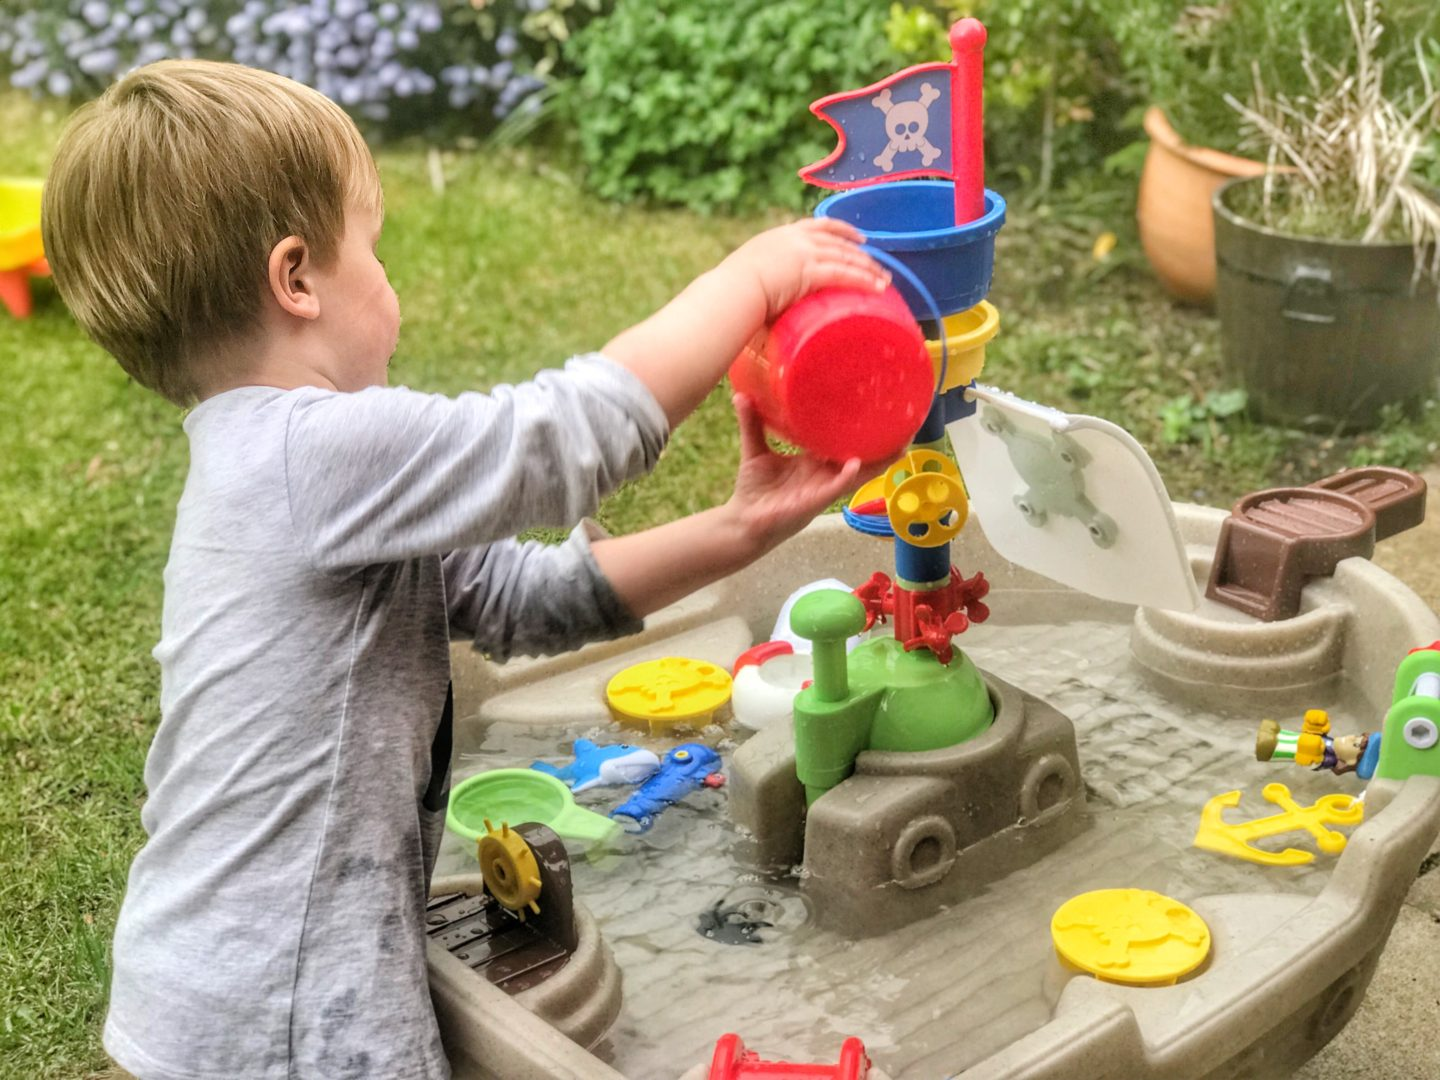 Dexter playing with the red bucket of the Little Tikes anchors Away pirate ship water table